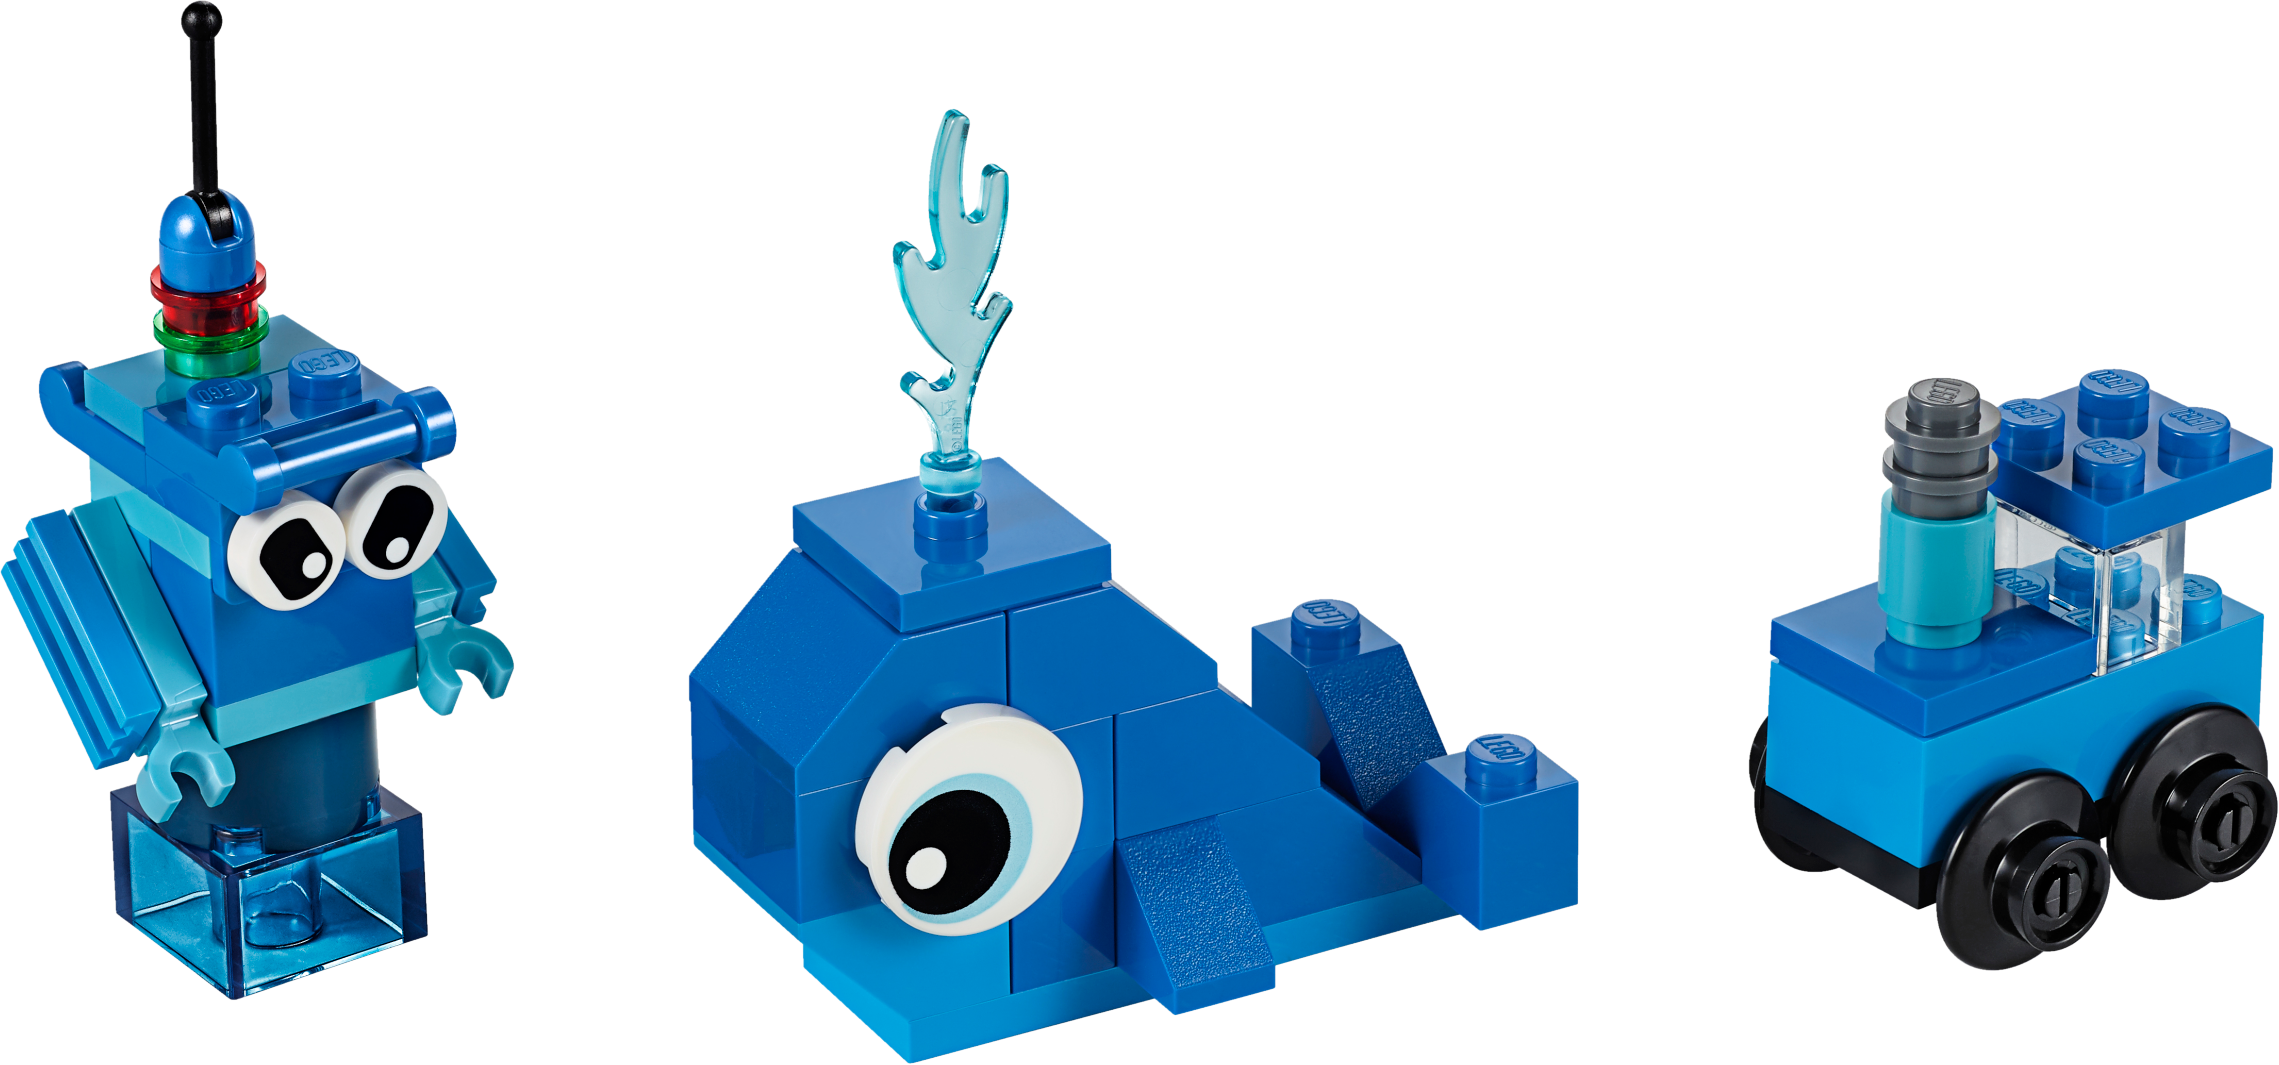 Creative Blue Bricks